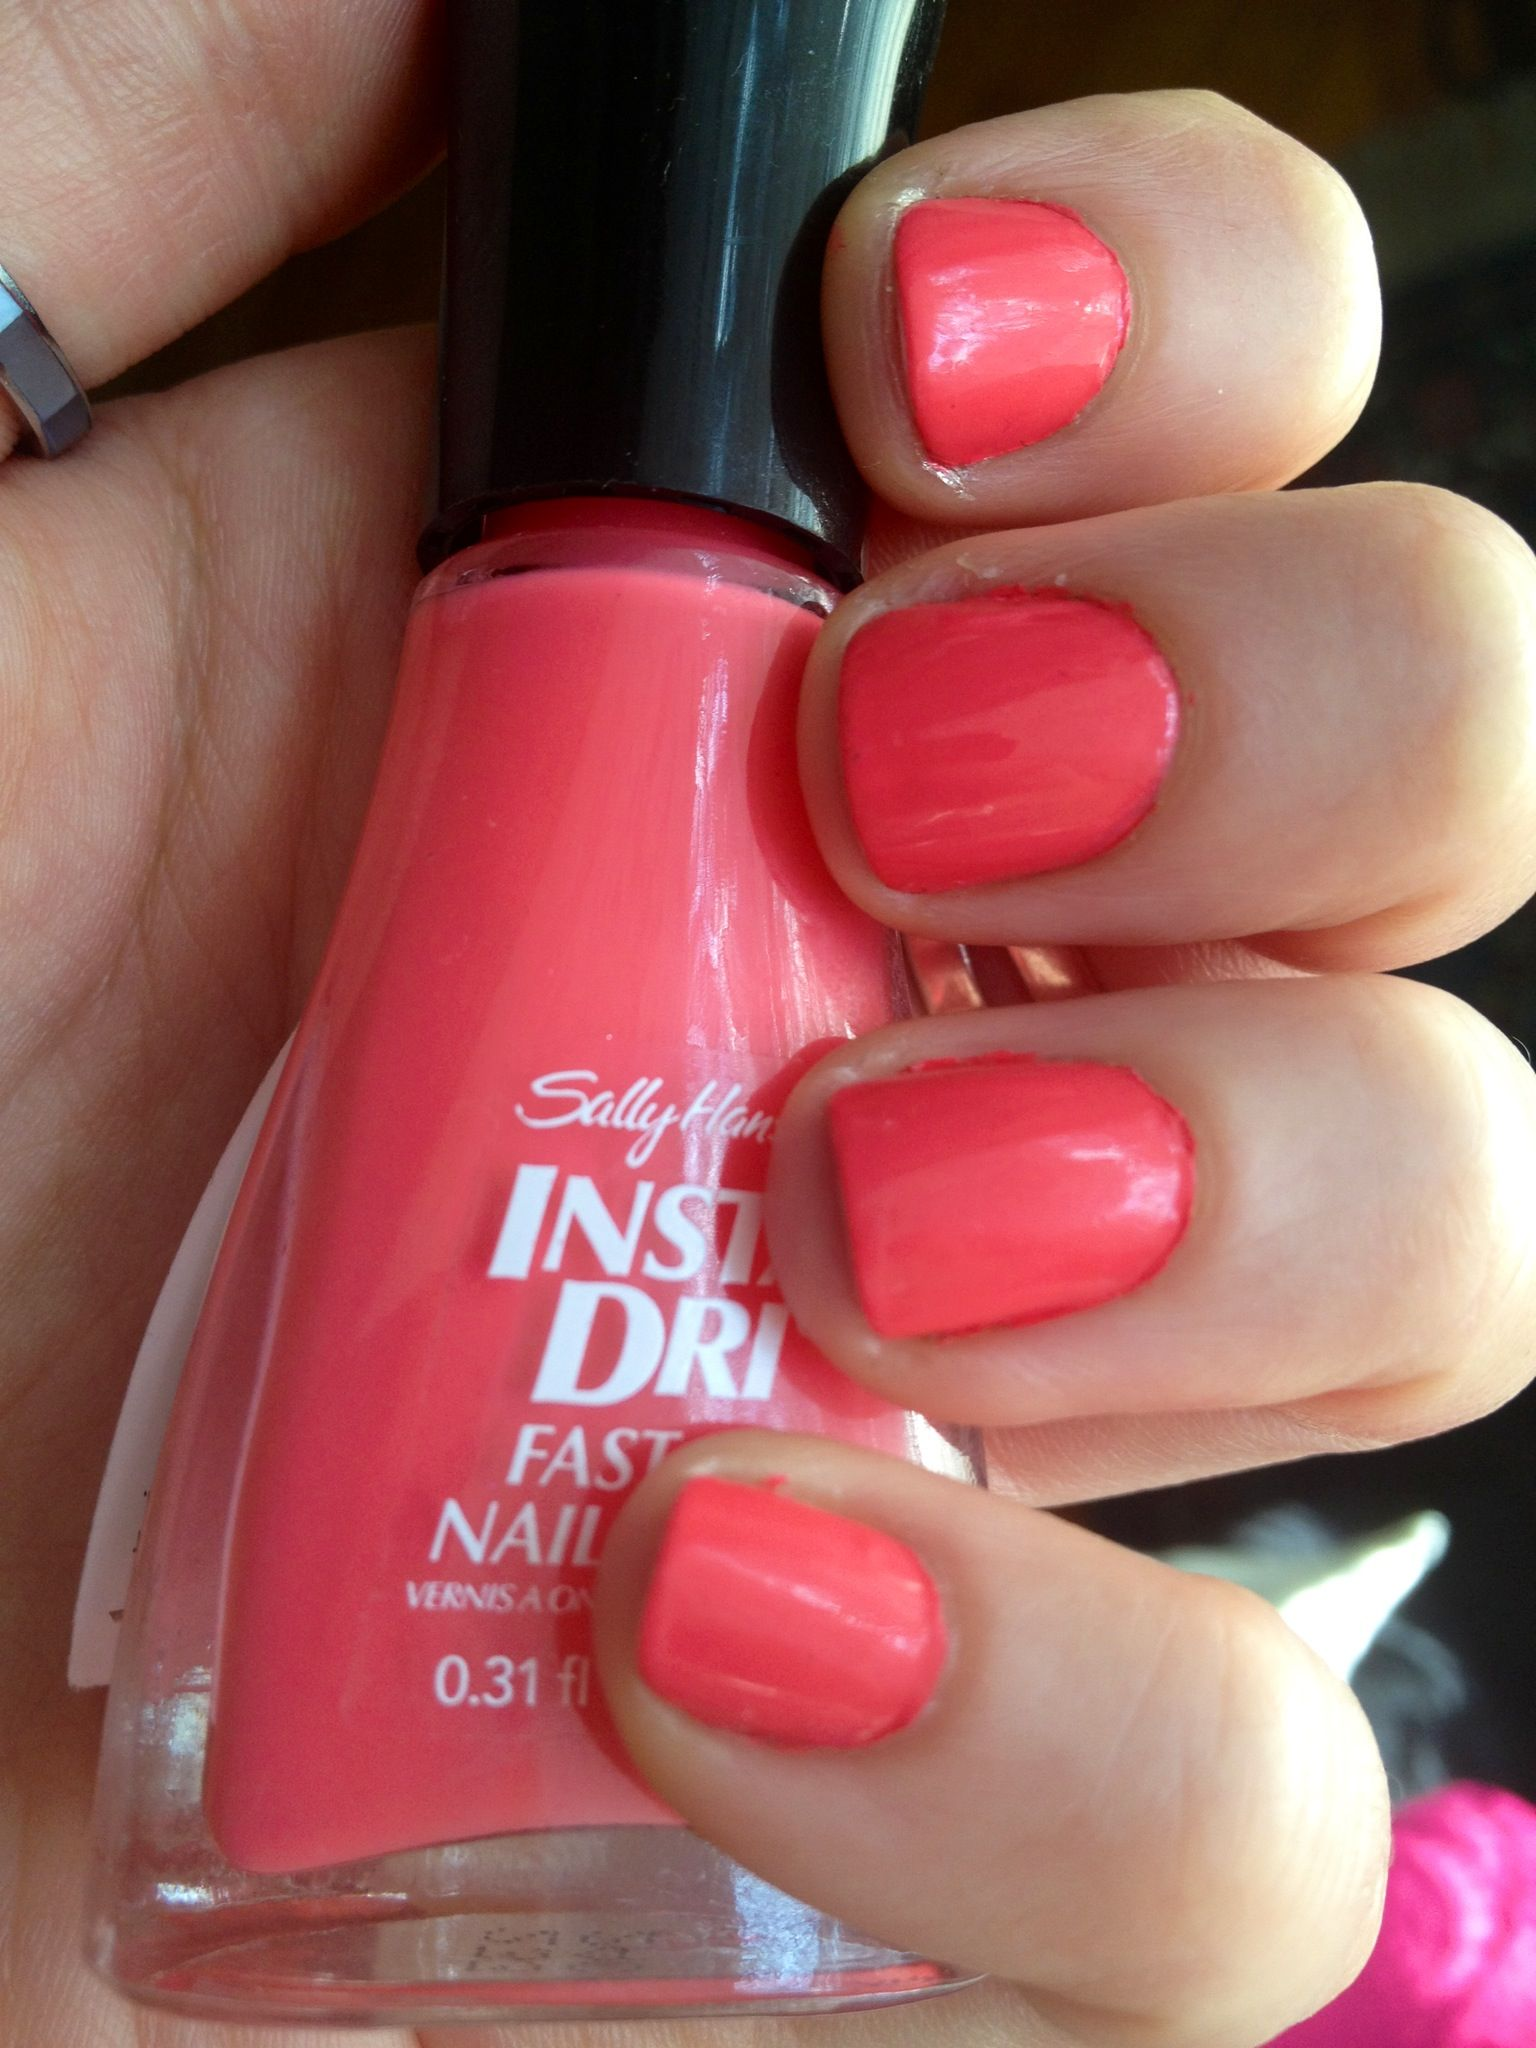 Sally Hansen Insta Dry Fast Dry Nail Color In Peachy Breeze